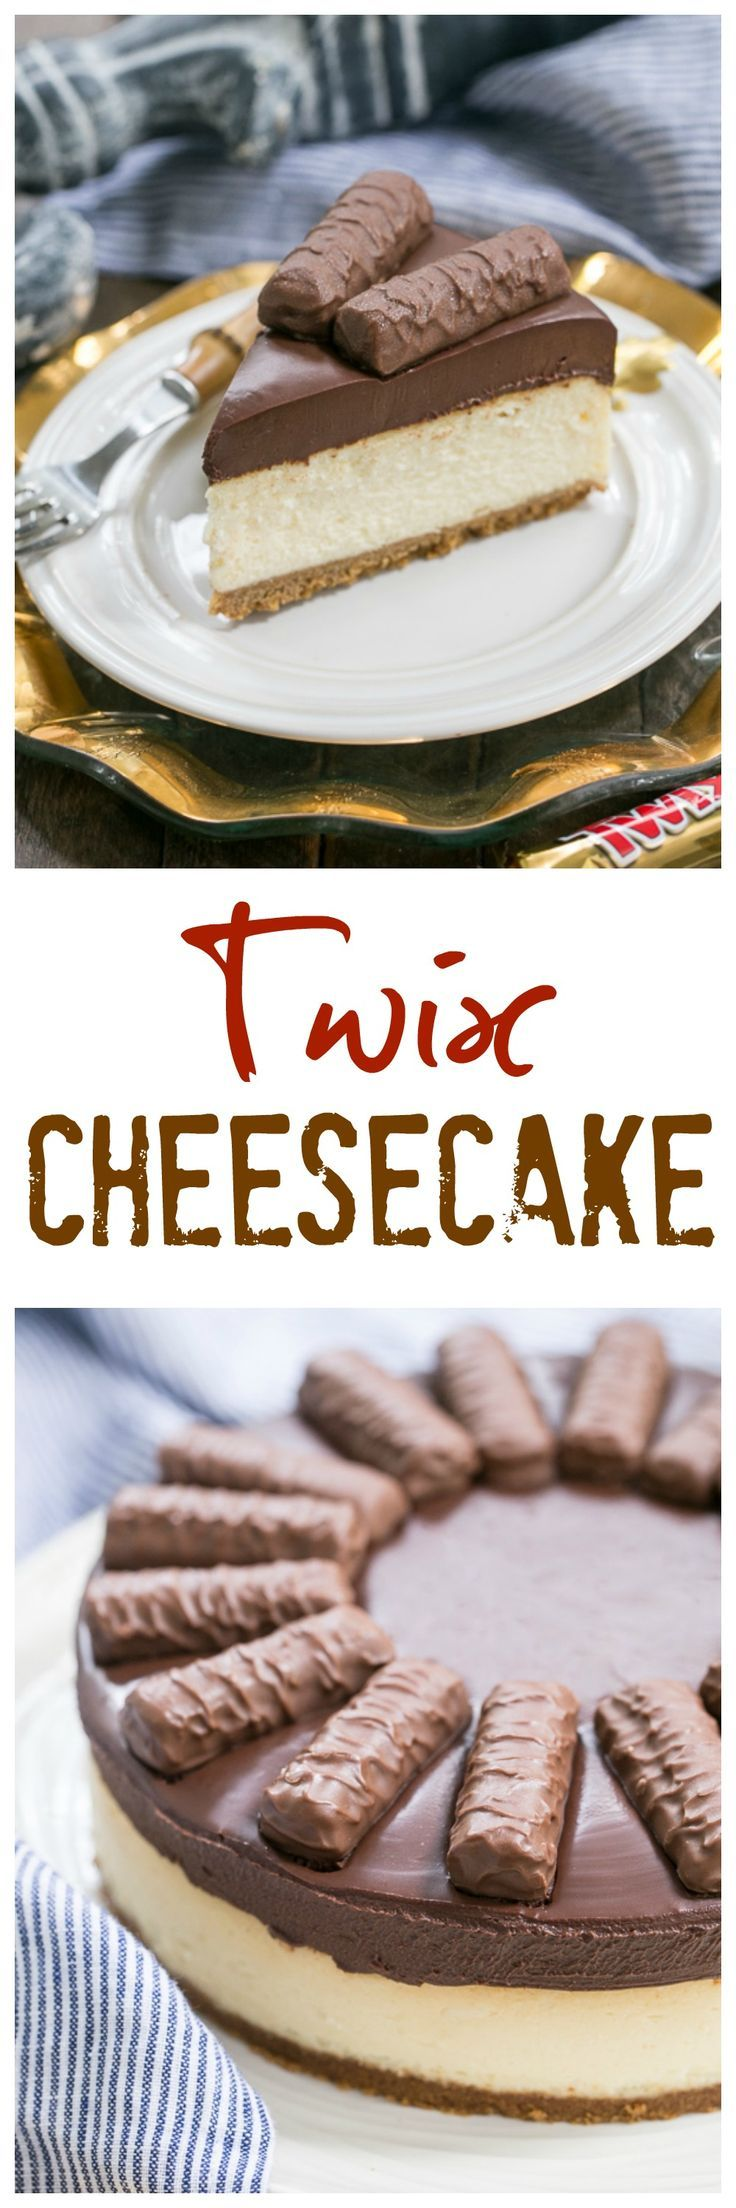 Twix Cheesecake | A dream cheesecake for chocolate and caramel lovers! /lizzydo/